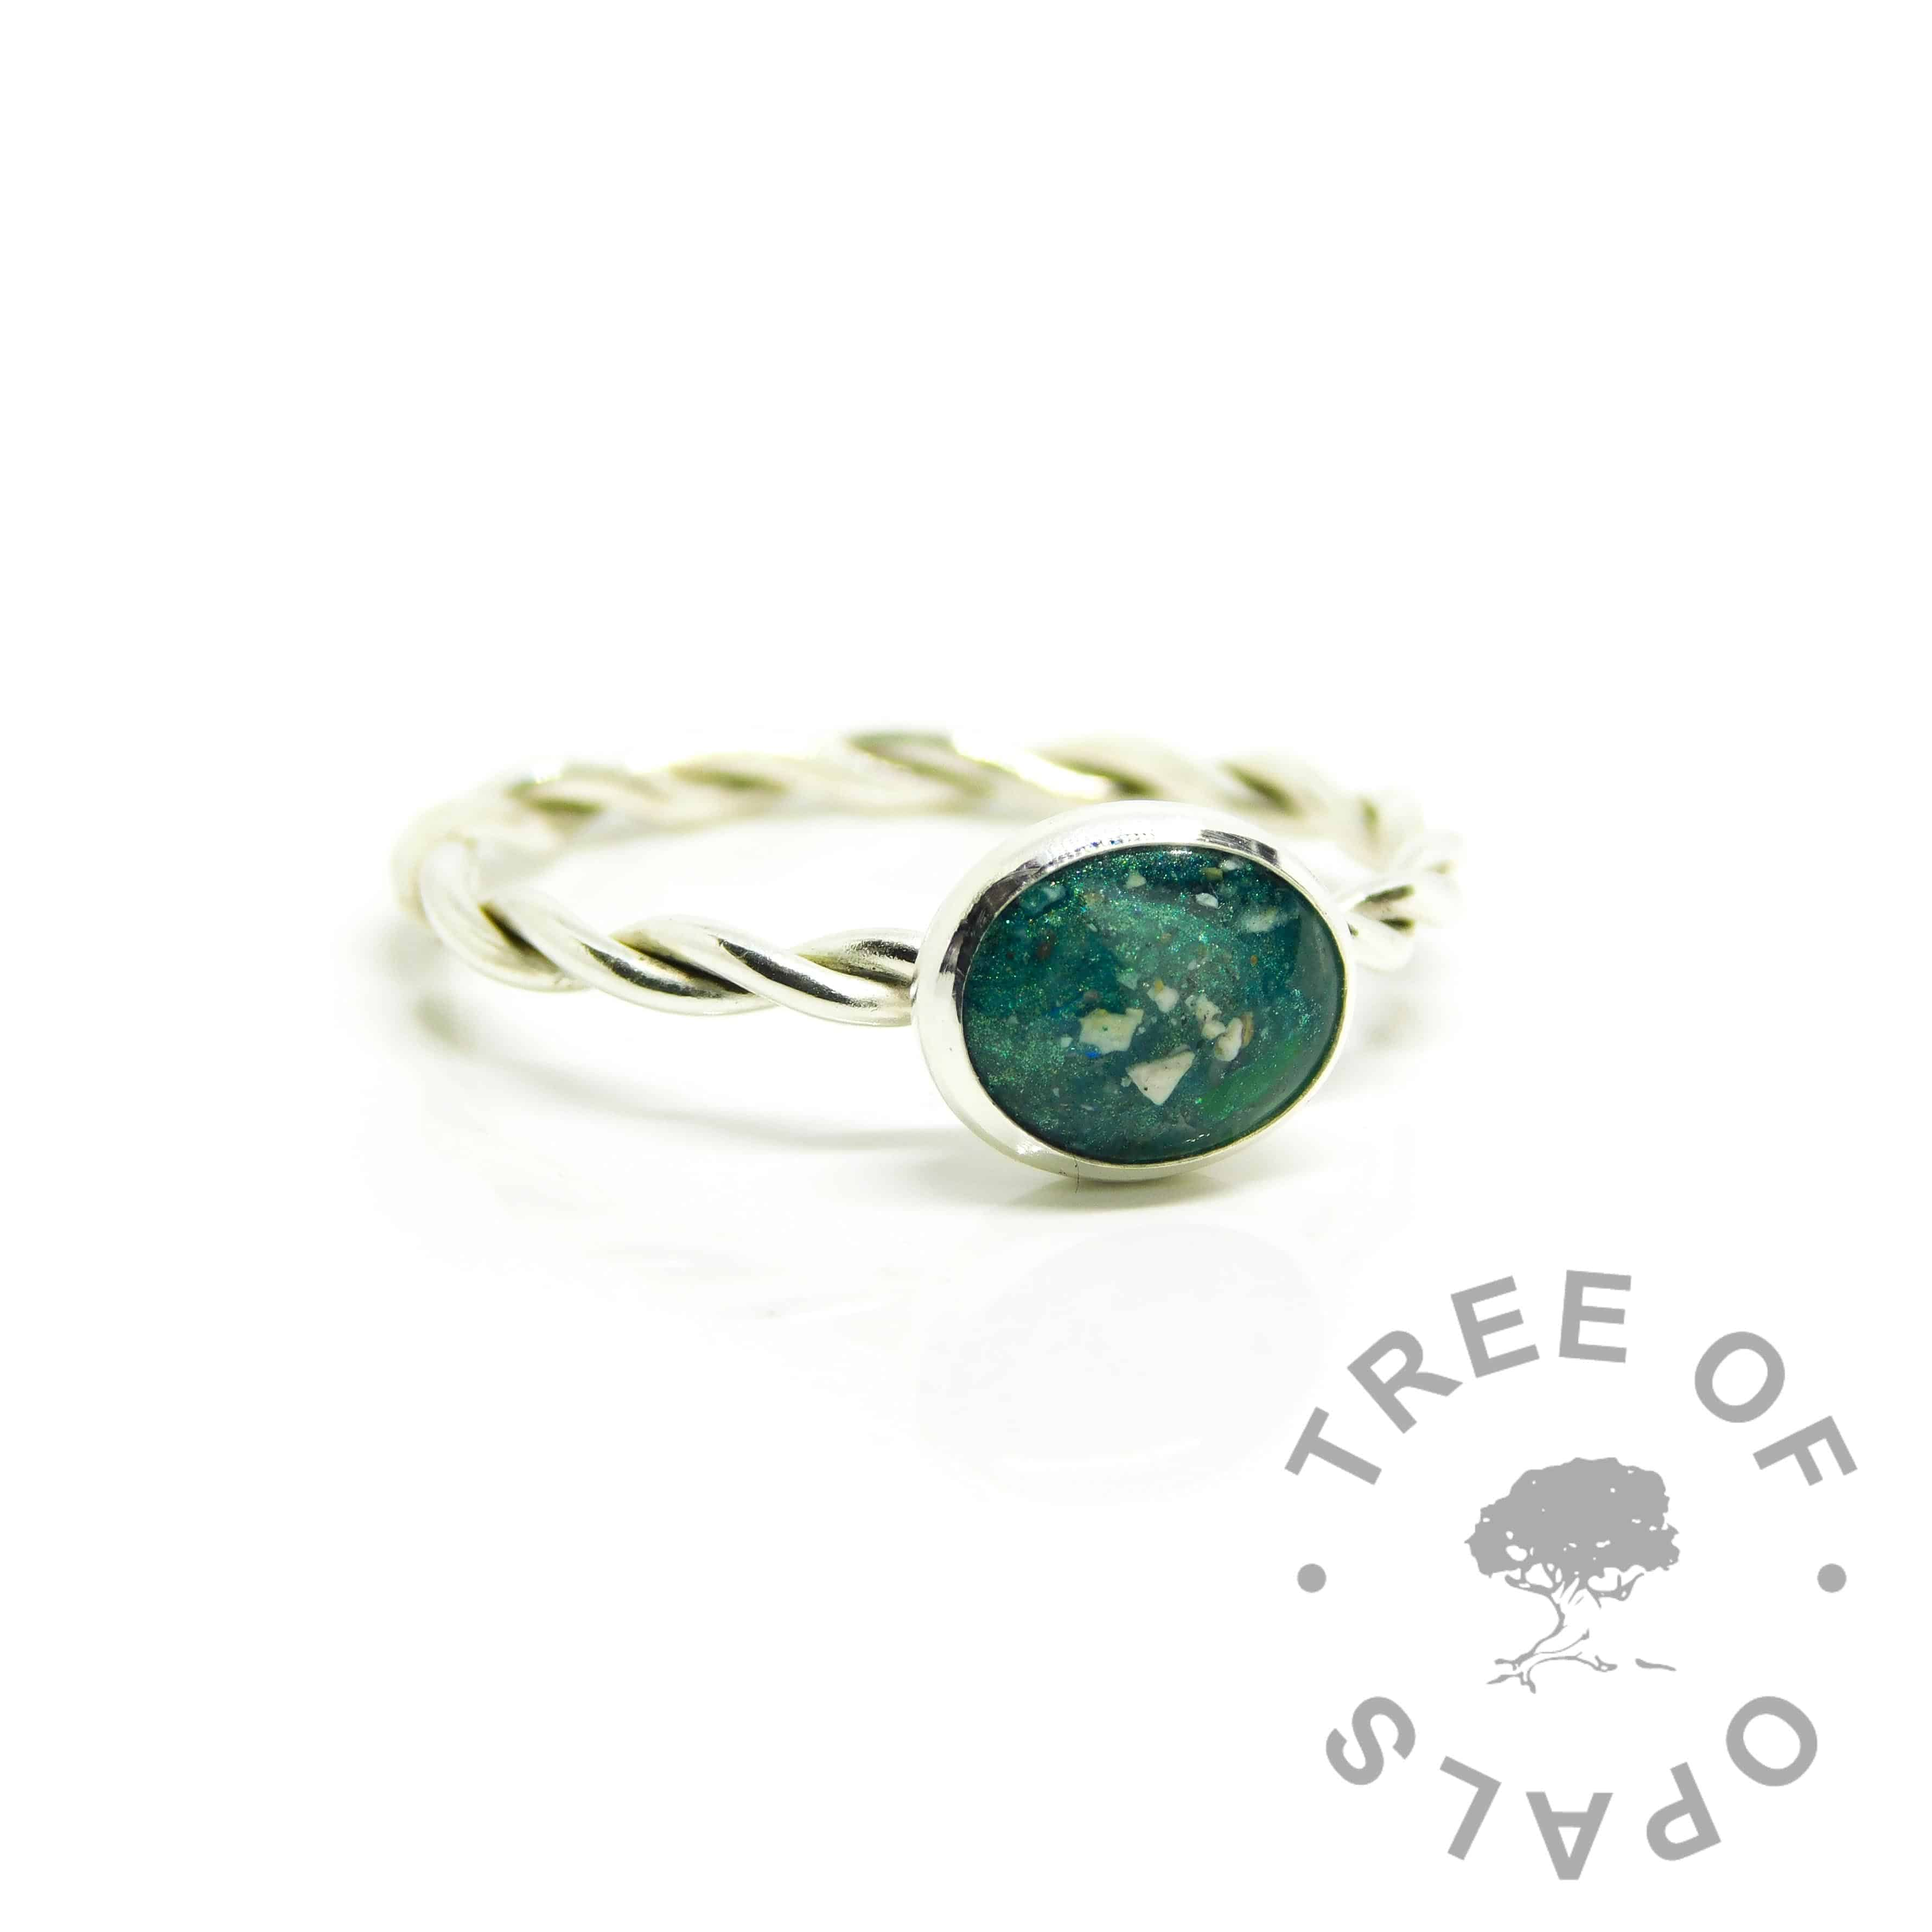 ashes ring teal, mermaid teal resin sparkle mix, 2.4mm twisted band ring setting